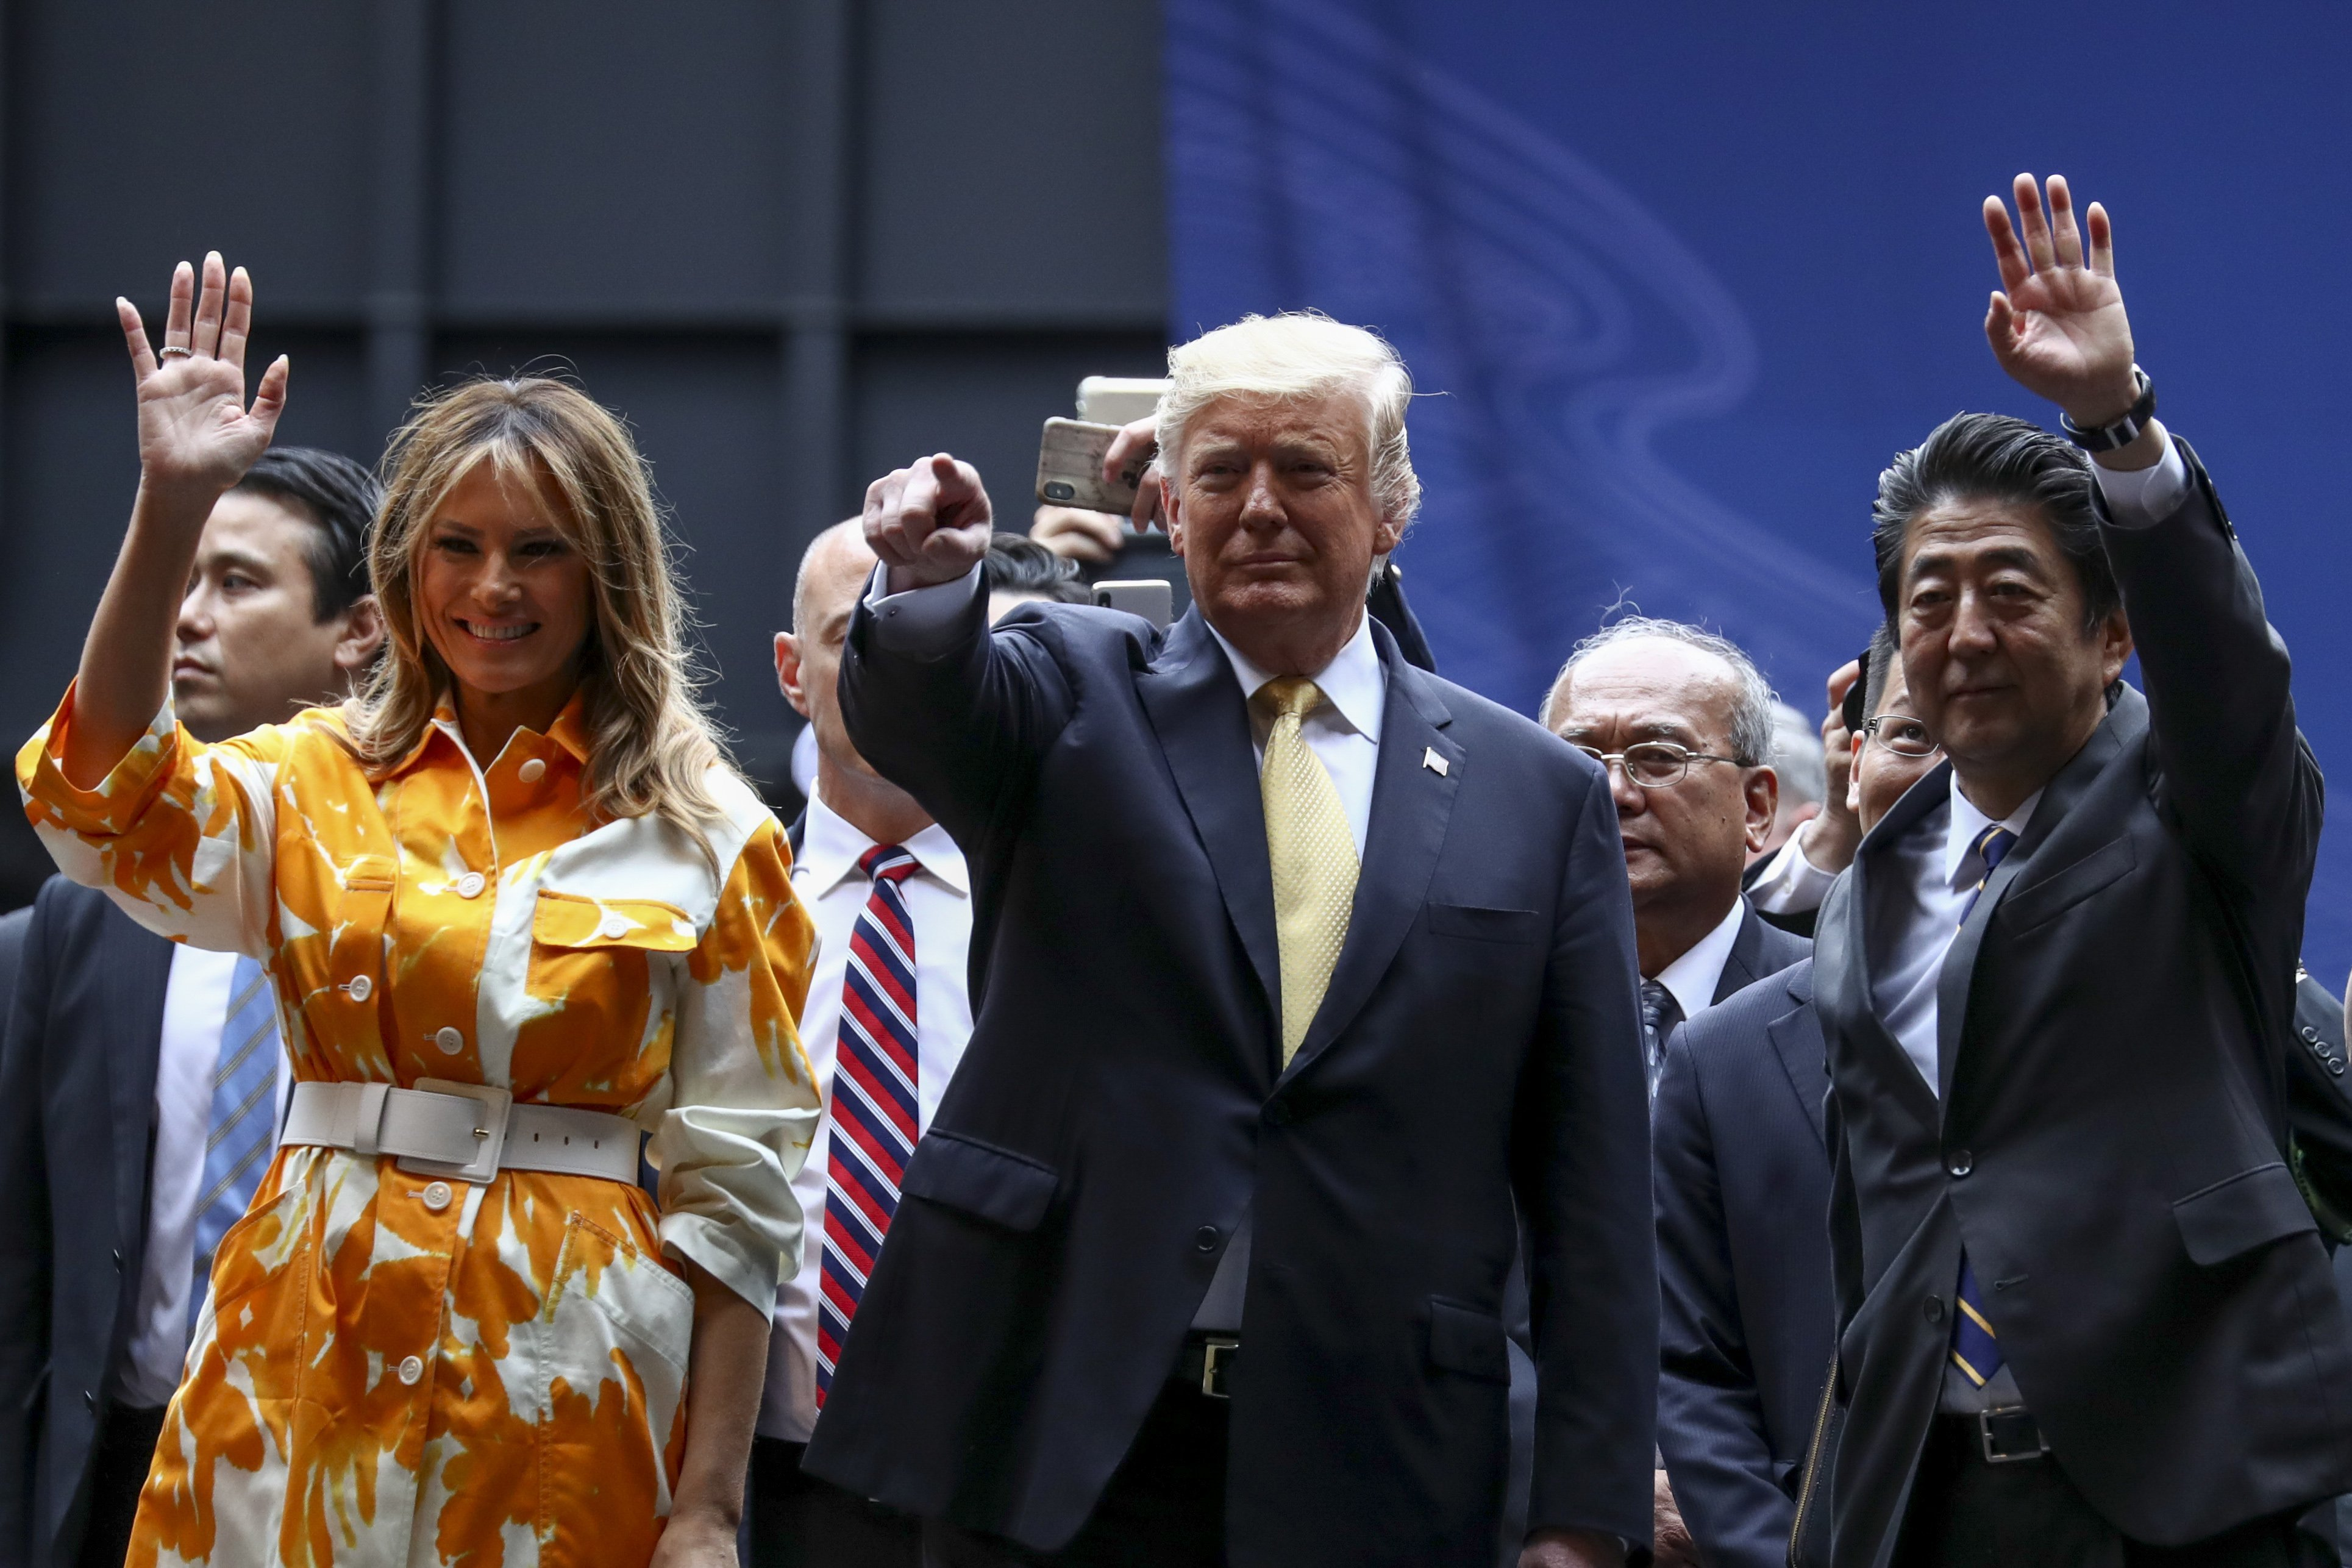 Donald Trump, Melania Trump and Shinzo Abe aboard the helicopter carrier DDH-184 Kaga in Tokyo, Japan   Photo: Getty Images